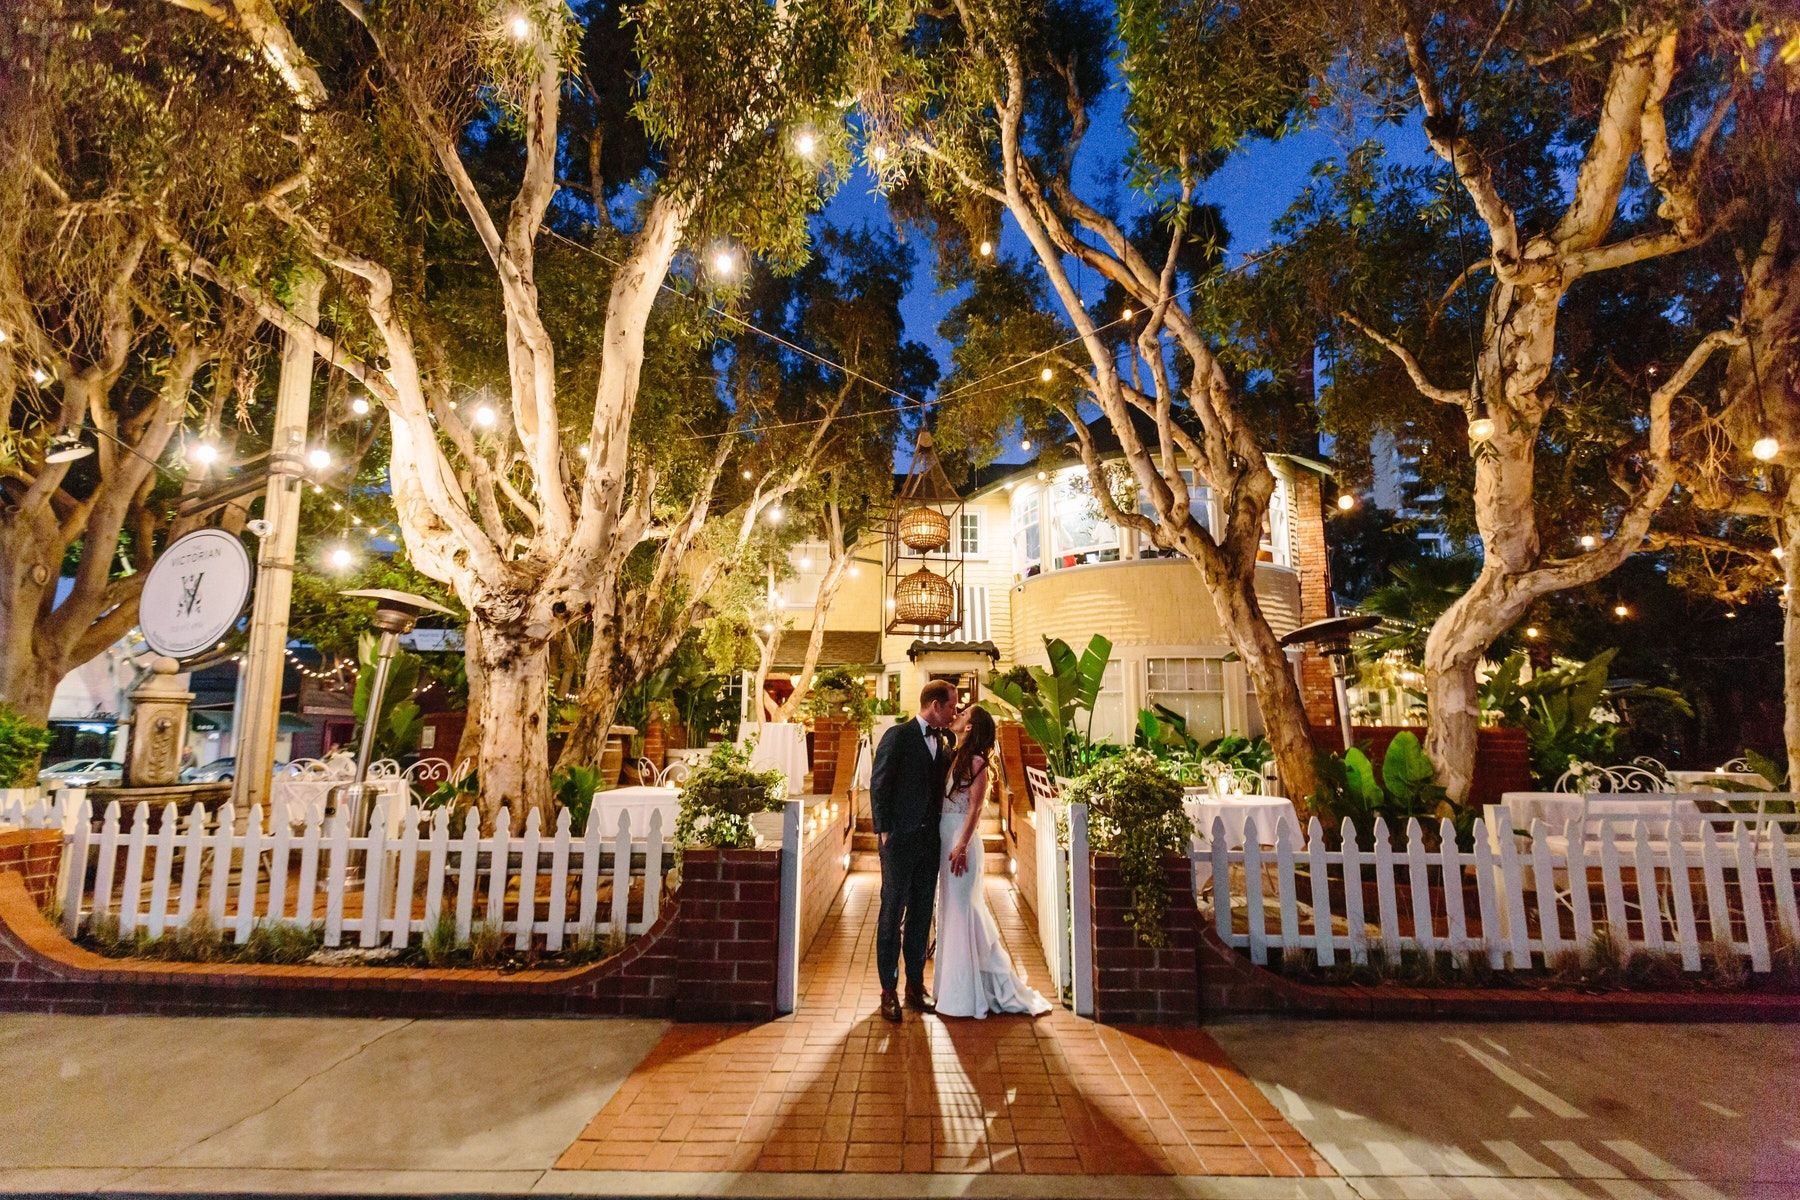 12 Los Angeles Venues For An Intimate Wedding See Prices Wedding Los Angeles Wedding Venue Los Angeles The Victorian Santa Monica